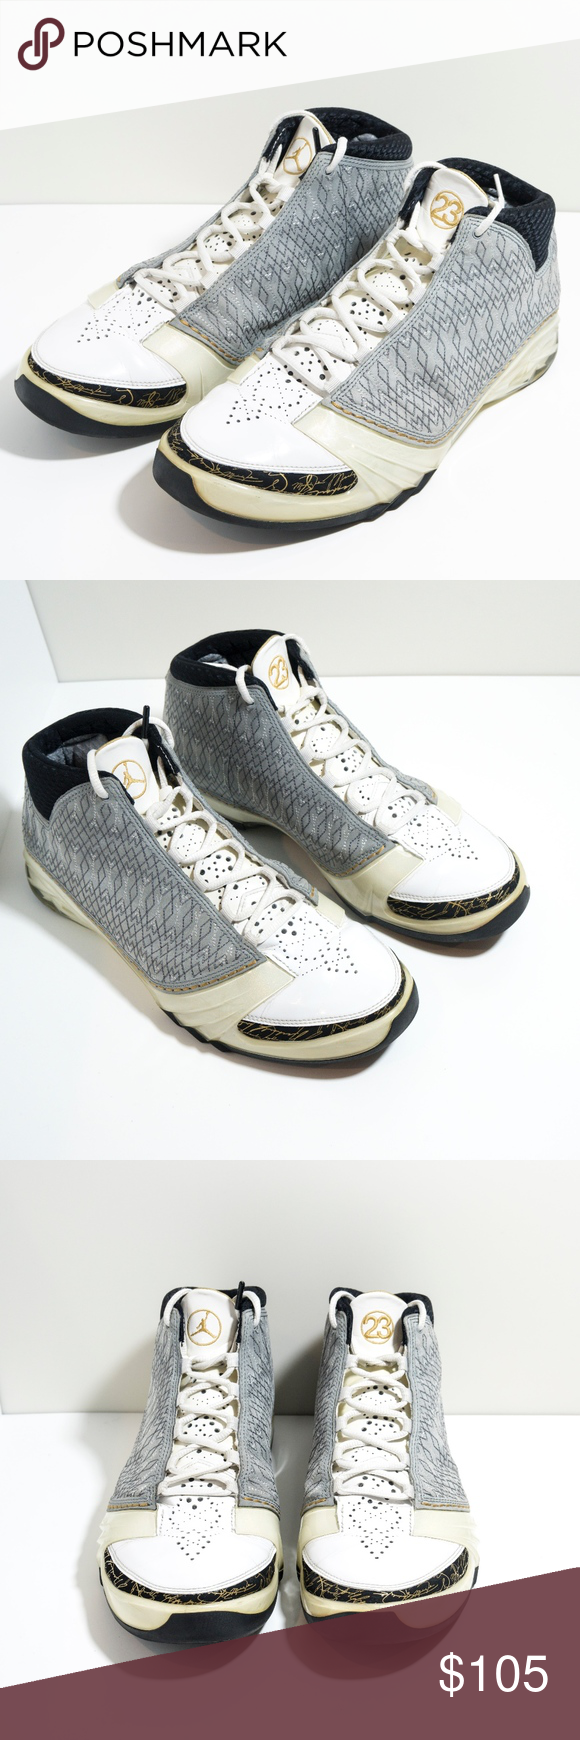 1f8720d7054664 Air Jordan 23 9 Shoes White    Stealth 318376 102 Great used condition.  Minor